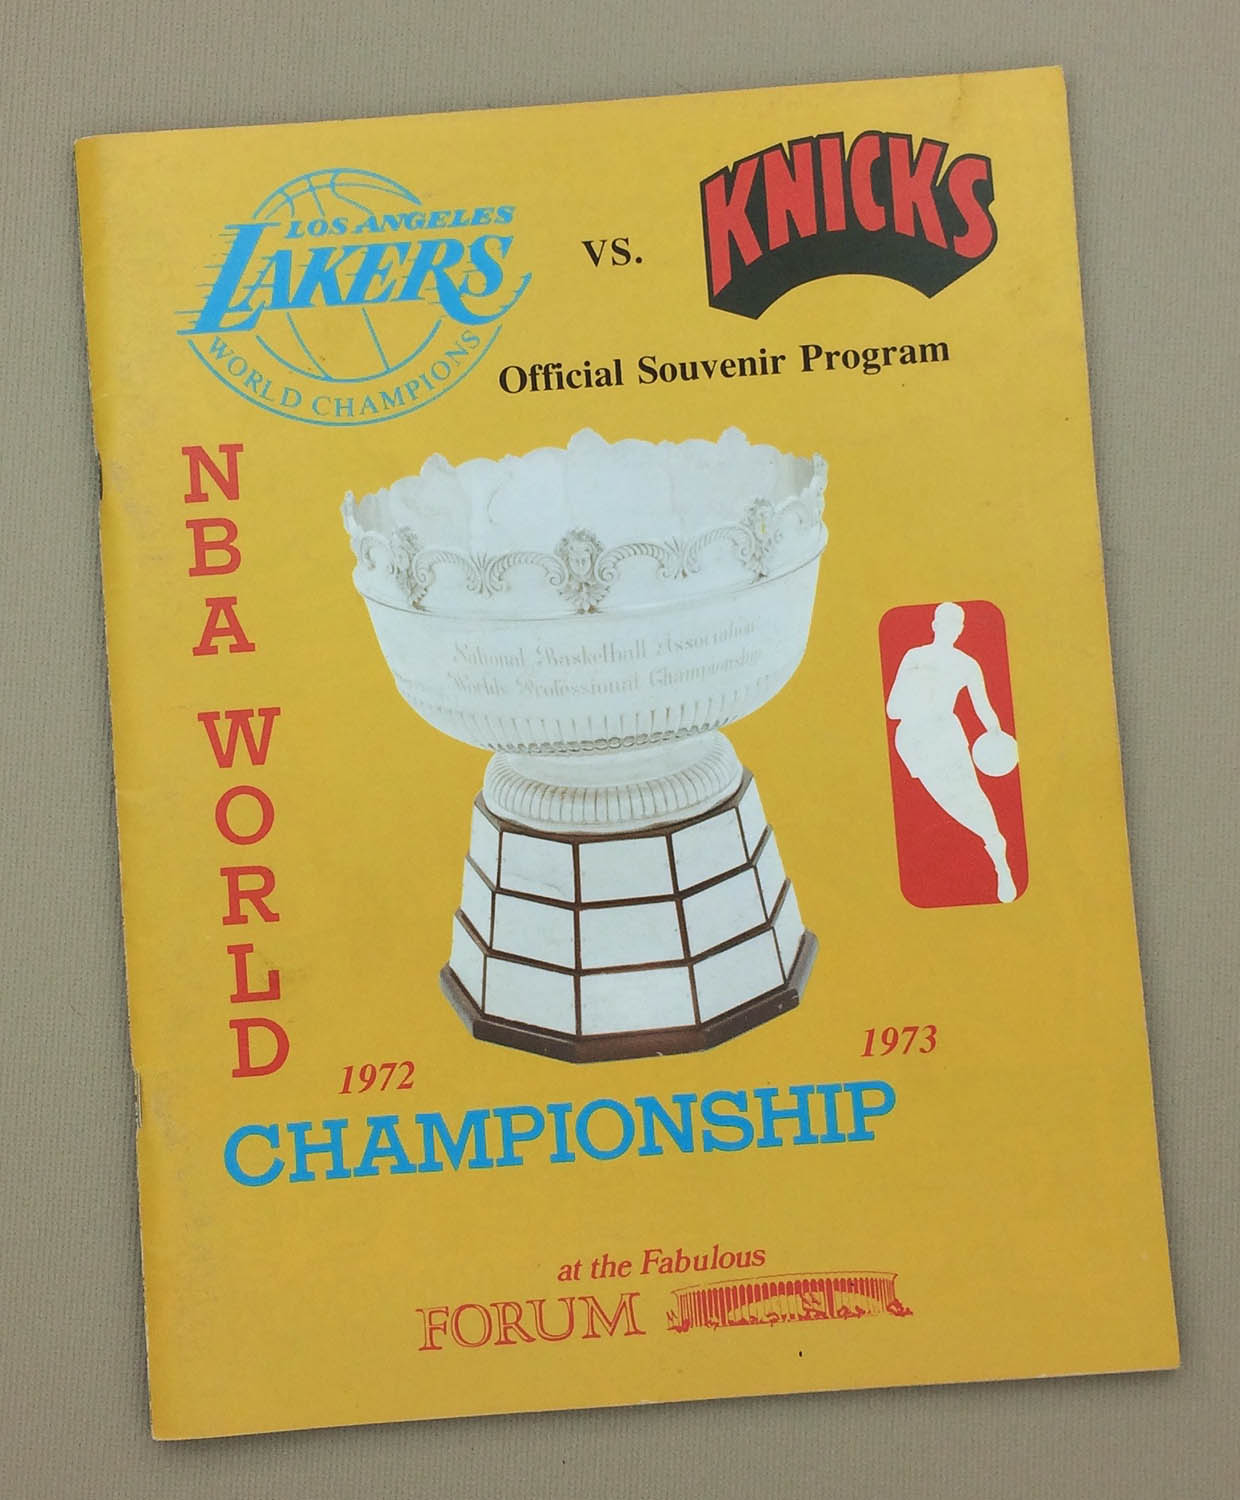 Lakers Knicks 1972 Game 5 Program